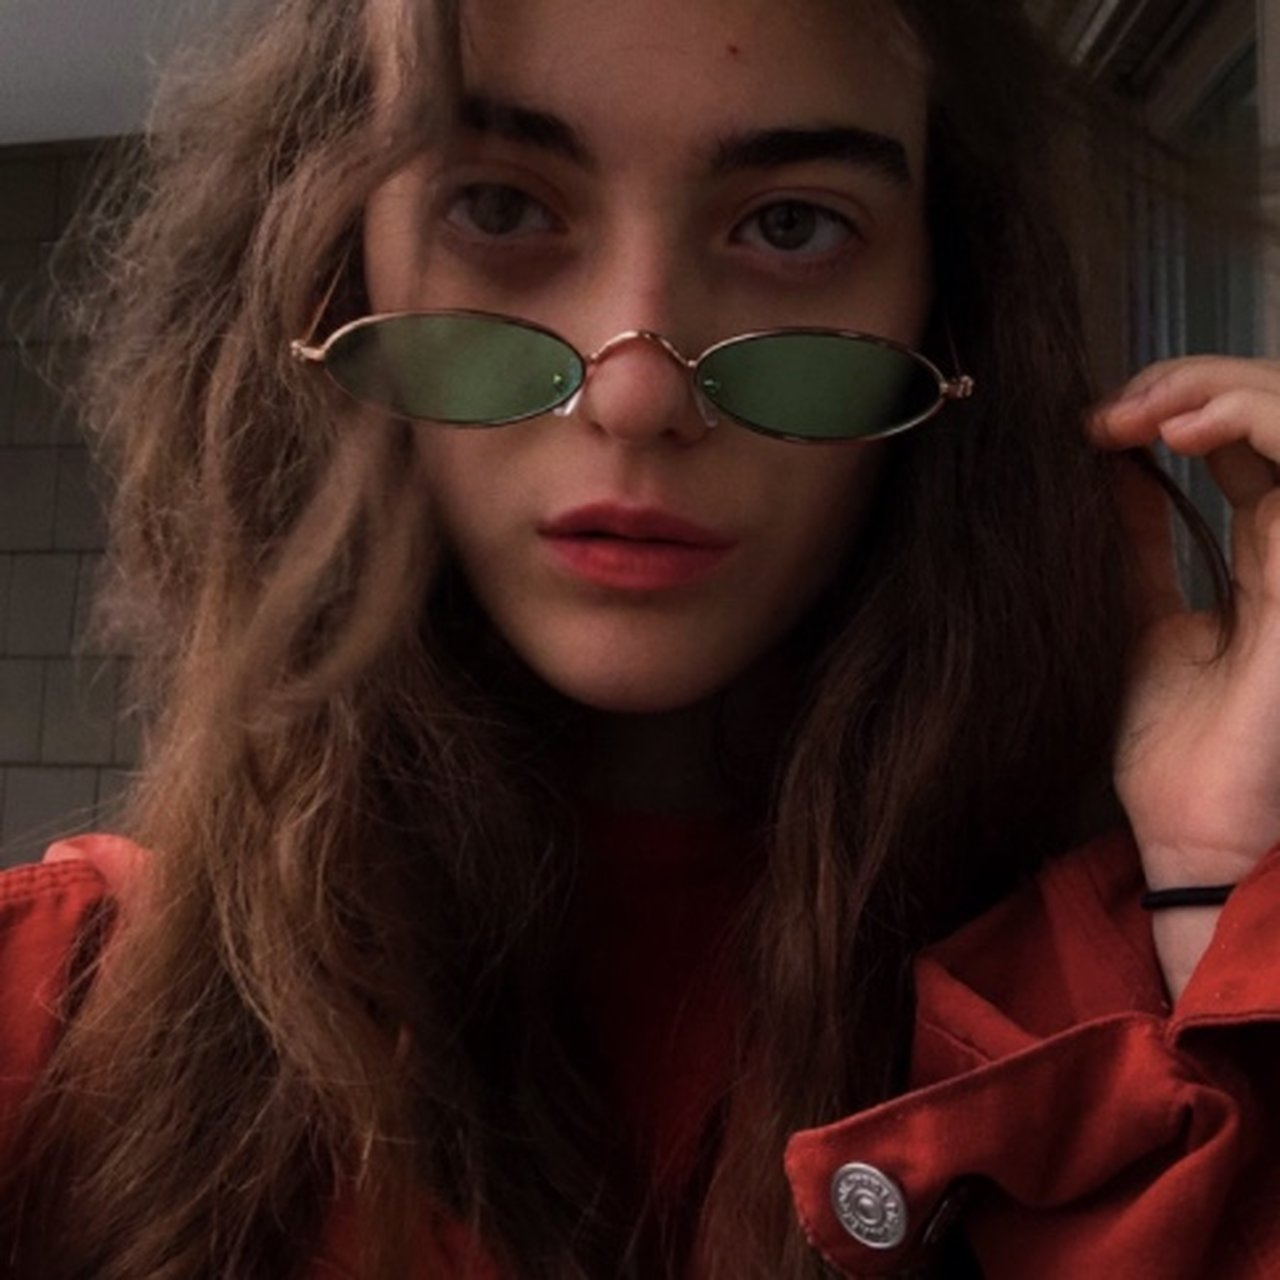 Vintage Green Gold Thin Sunglasses Got These At Market Depop